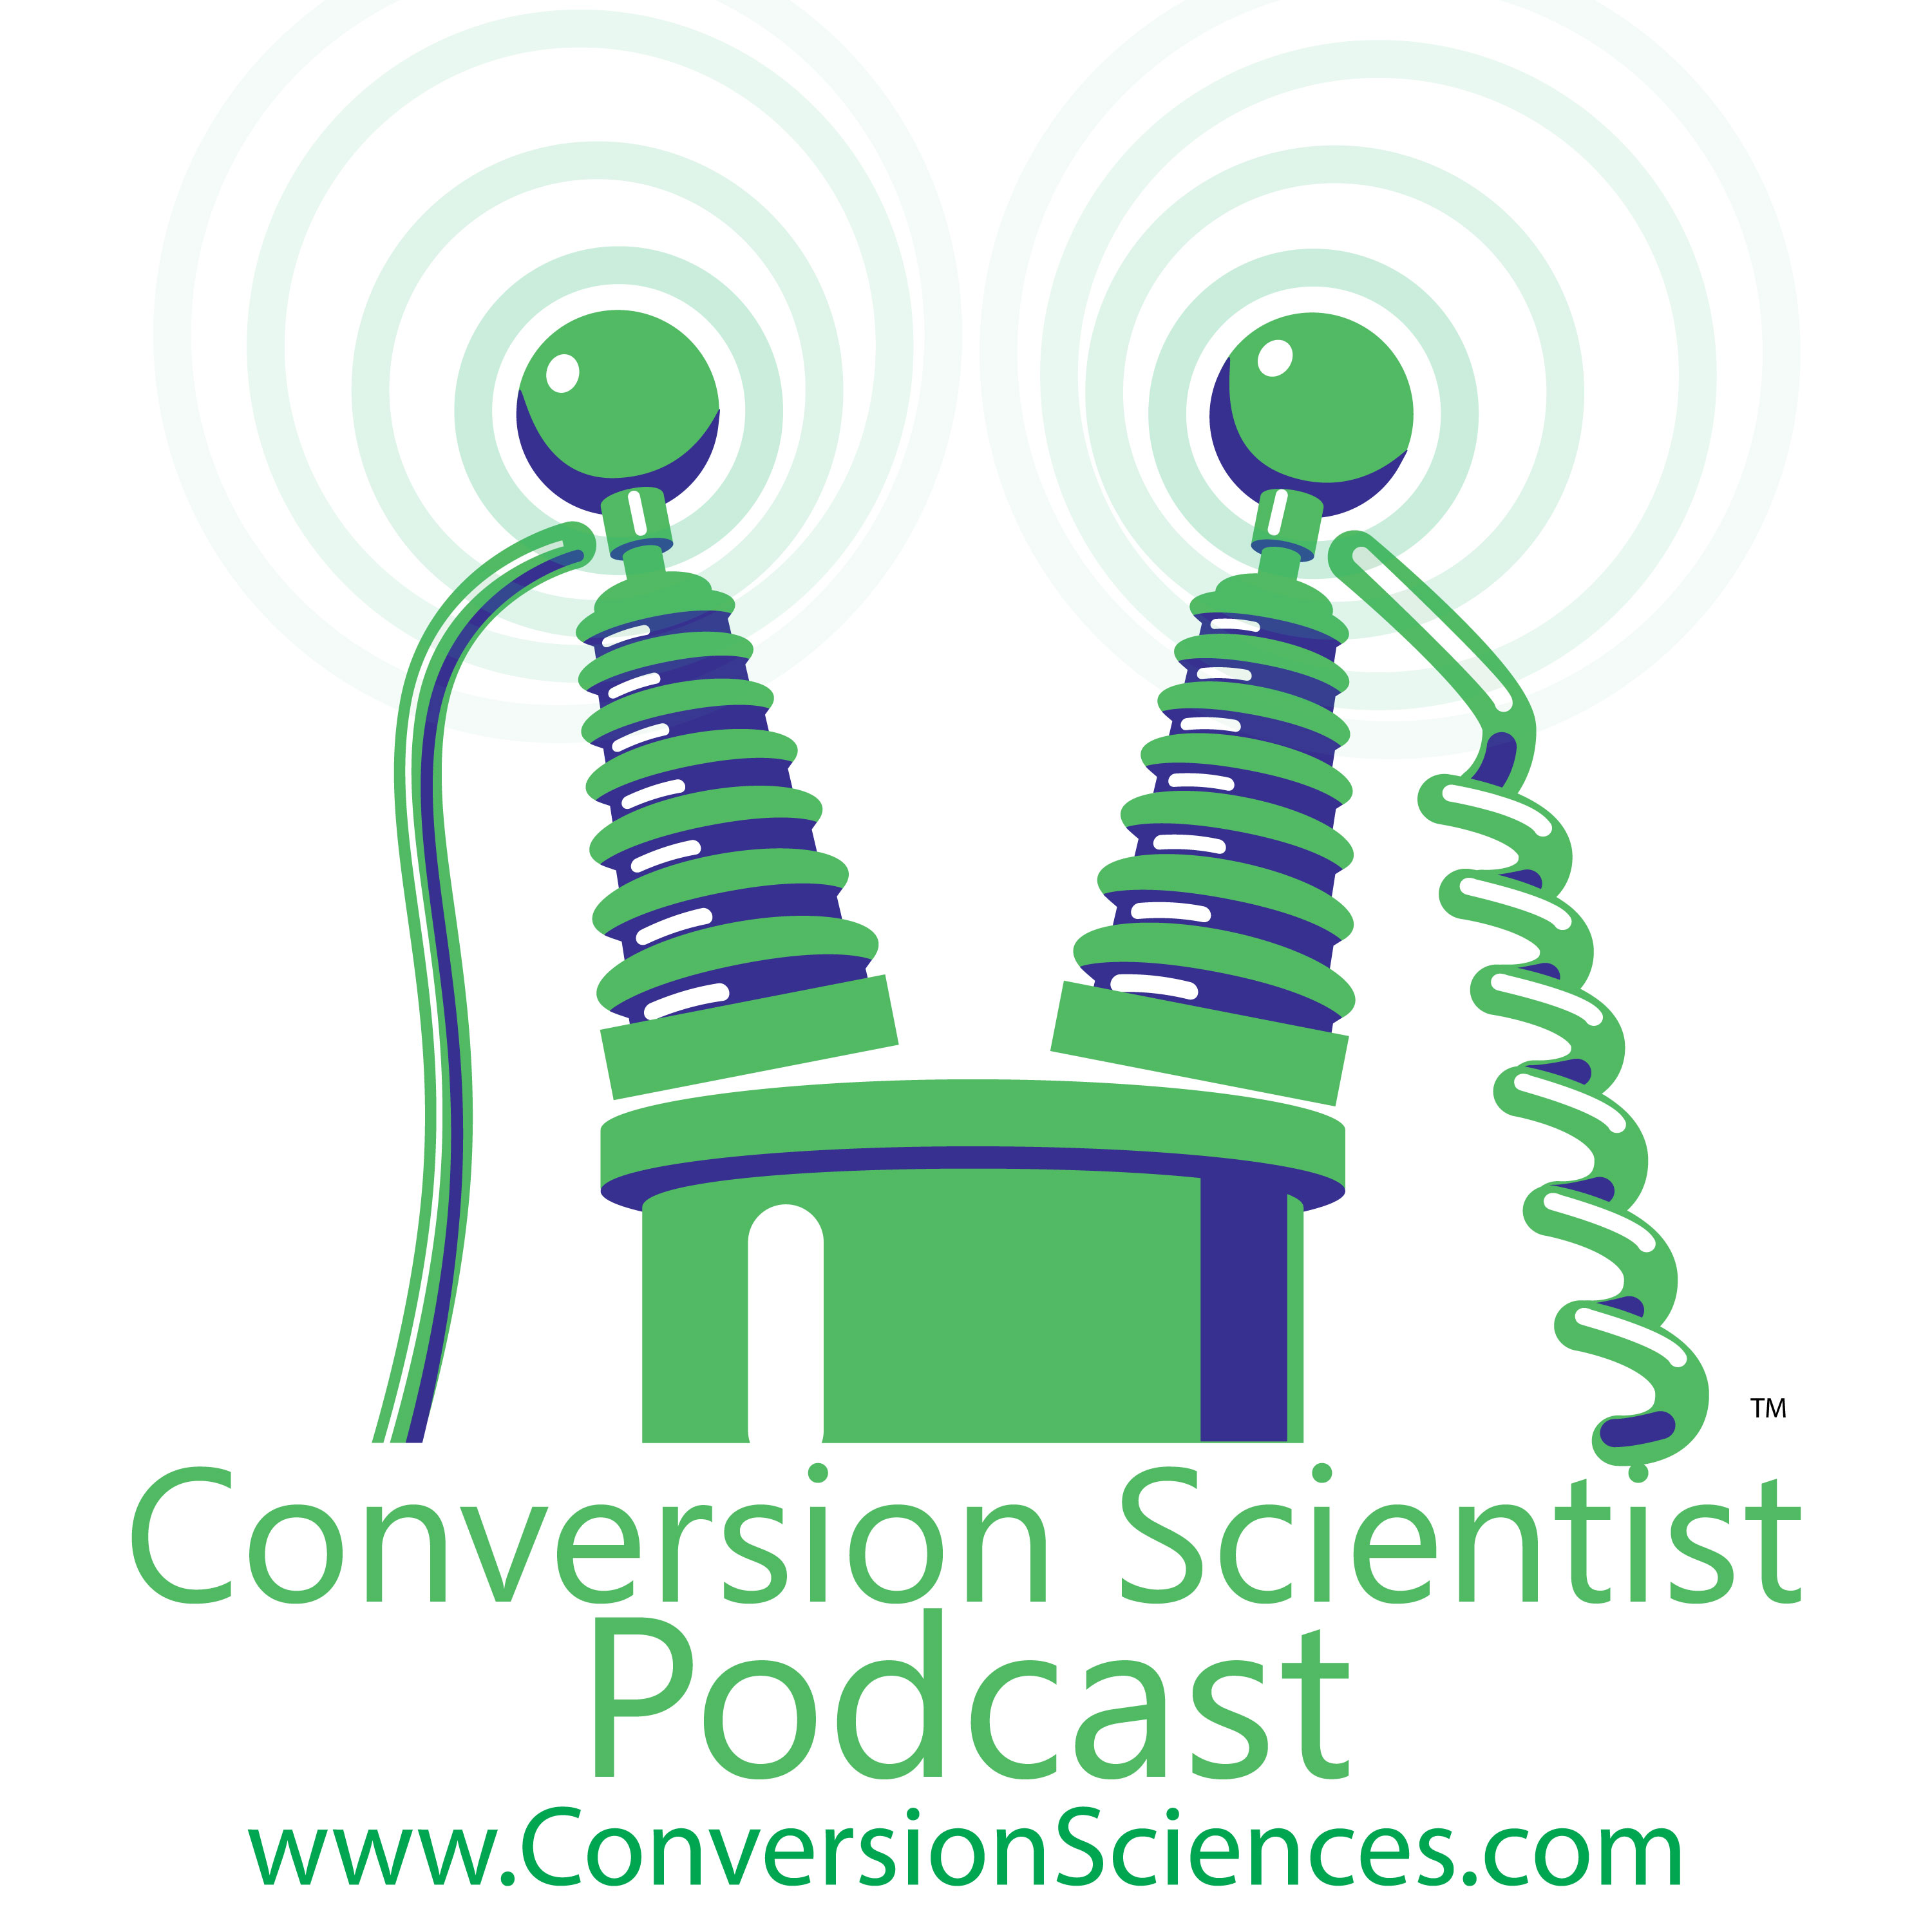 The Conversion Scientist Podcast by Conversion Sciences